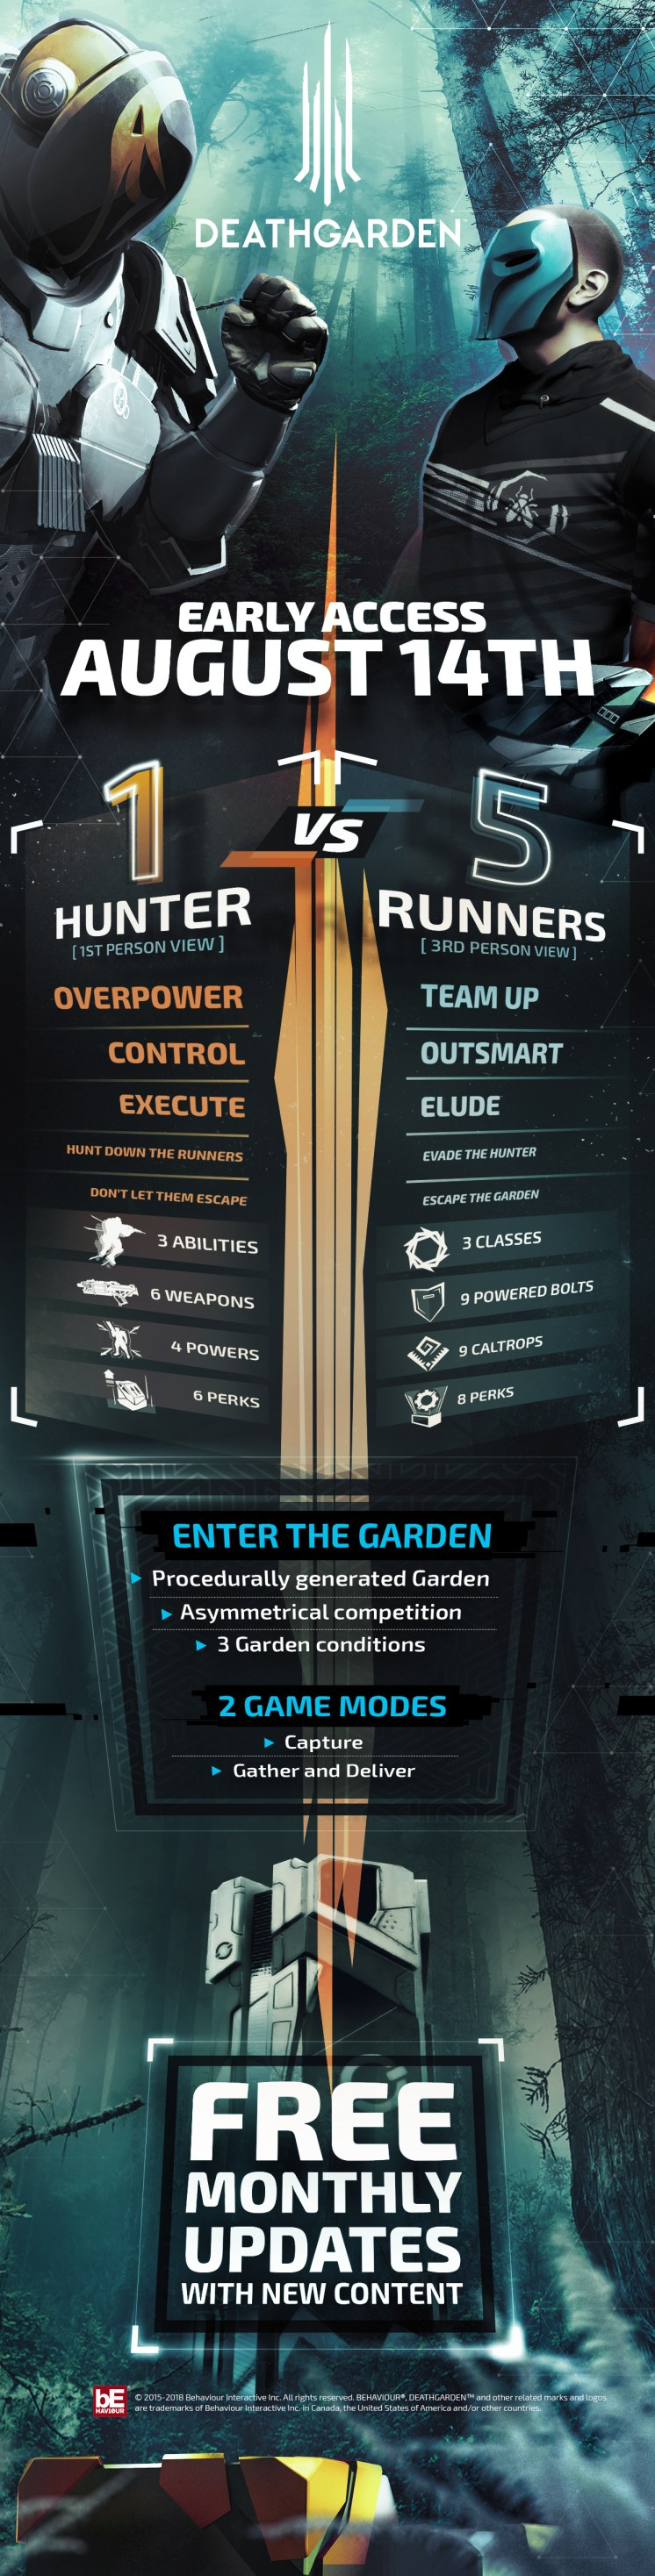 Deathgarden_infographic_EARLY_ACCESS_Aug2018